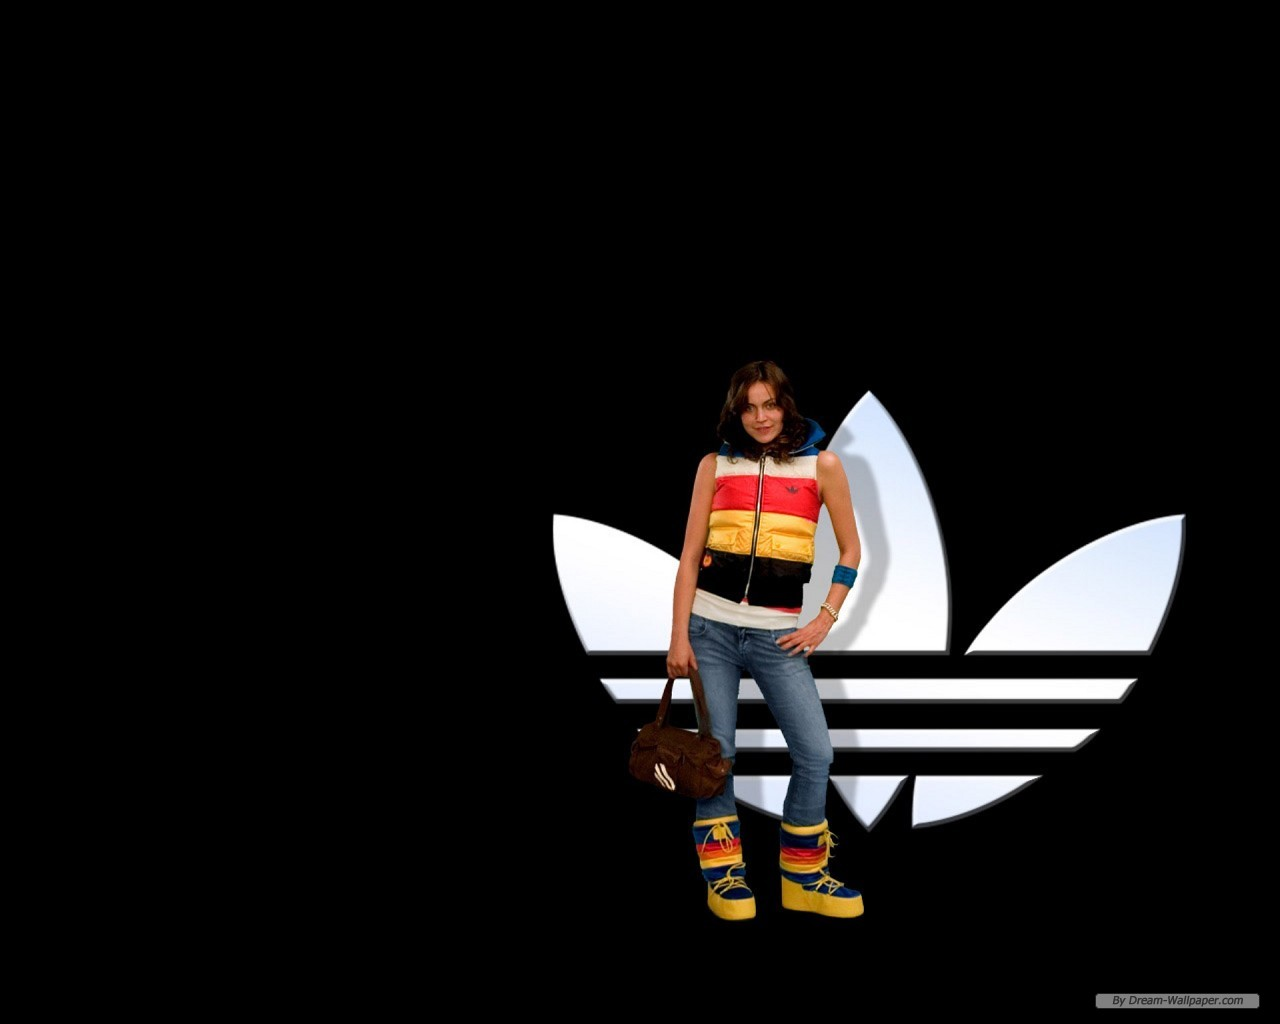 URL httpwwwdream wallpapercomsport wallpaperadidas wallpaper 1280x1024